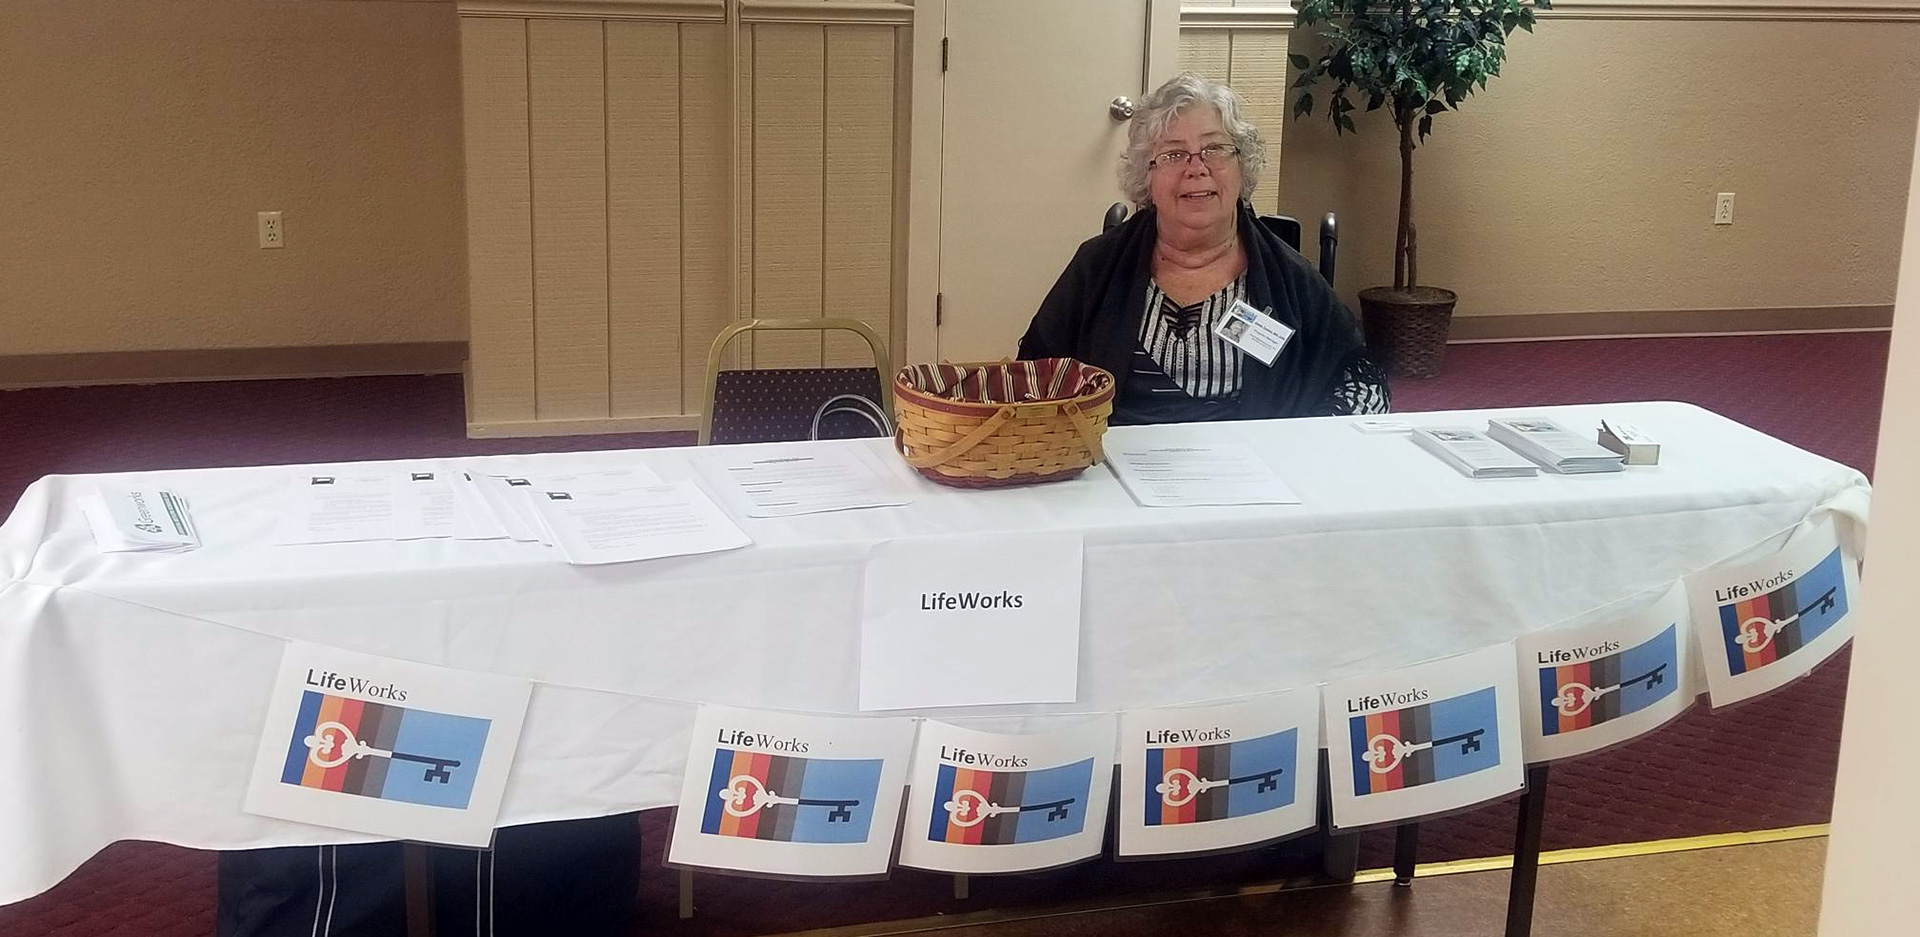 LifeWorks GBR County Job Fair, Cindy Tucker